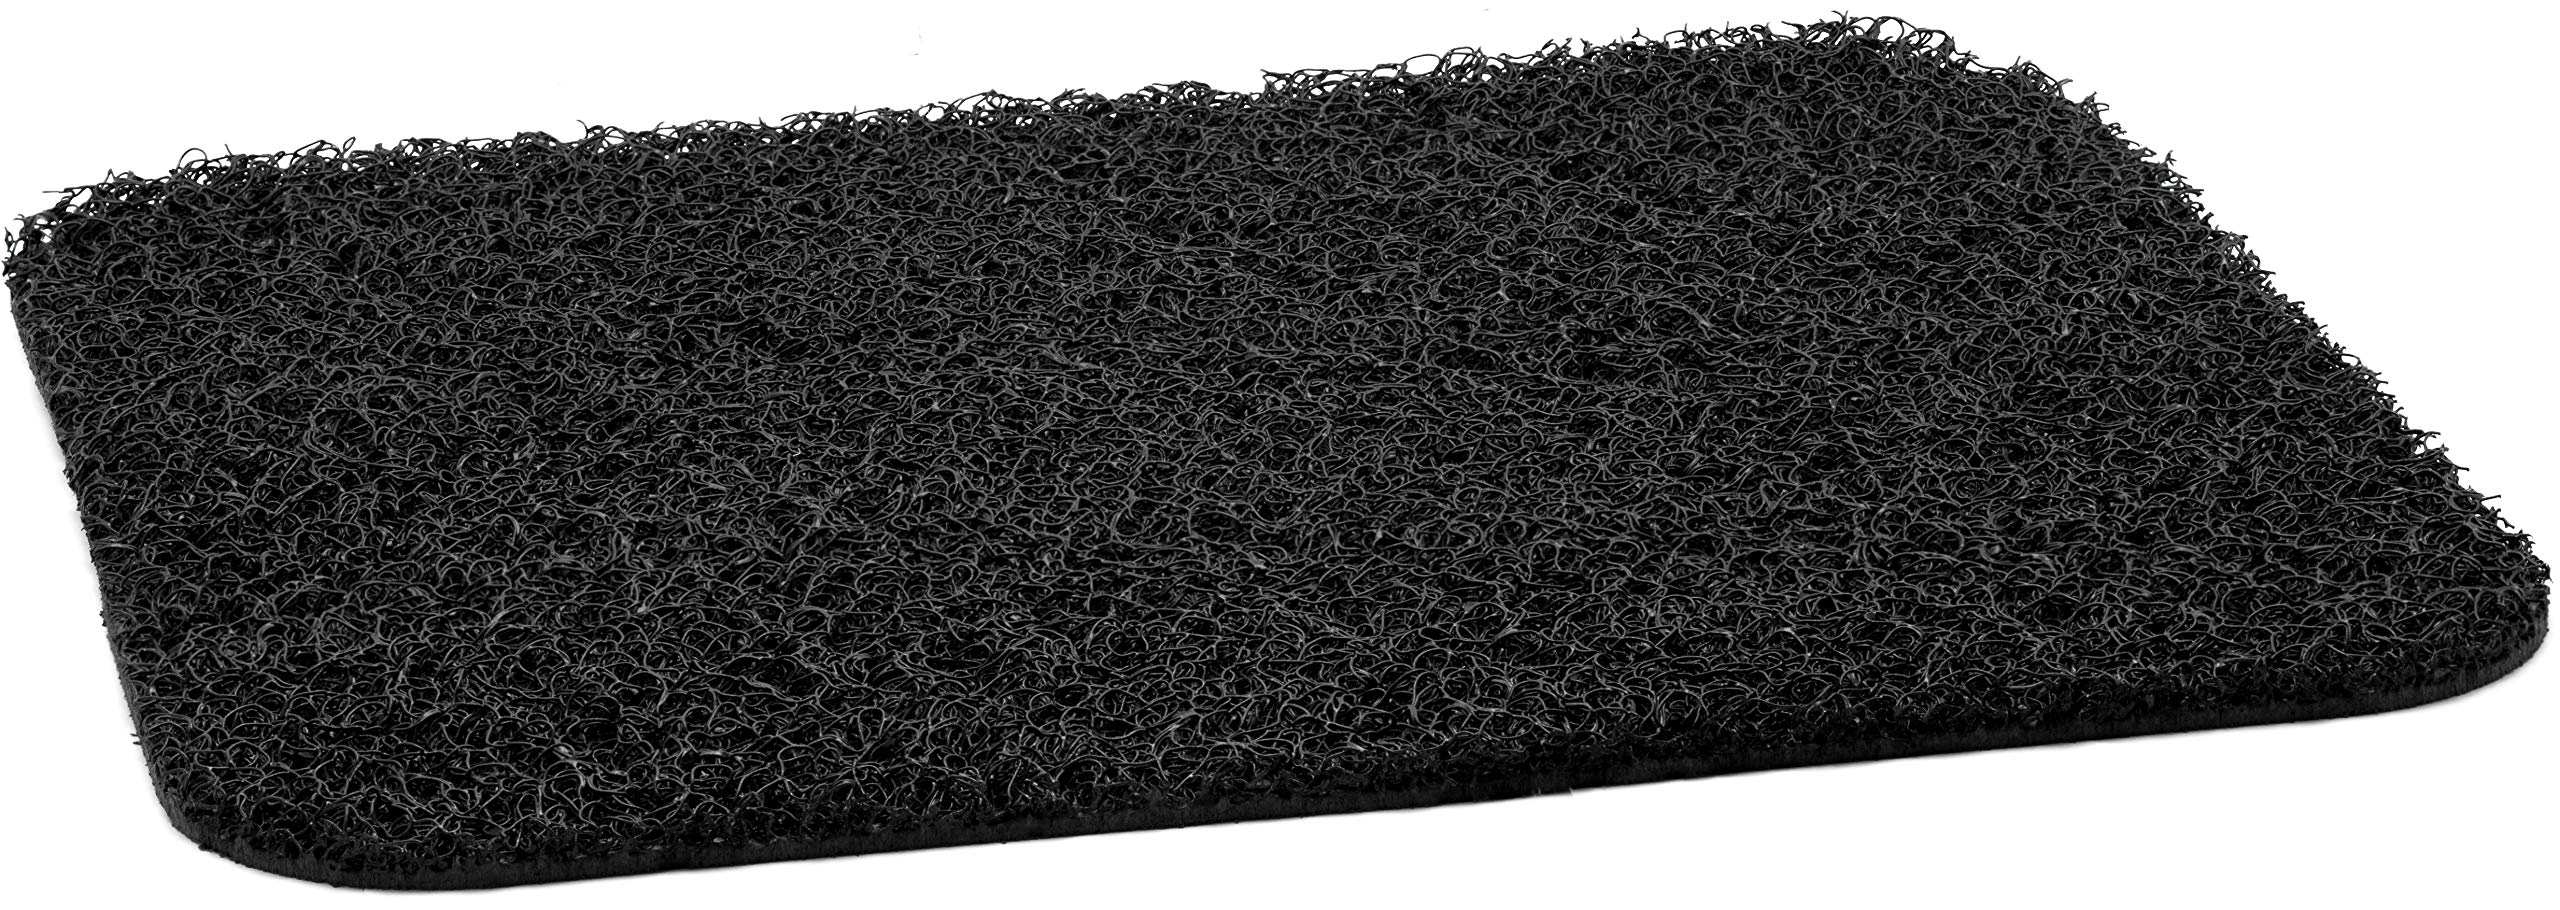 Black 6050 Anti-Vibration mat, Rounded Corners, 18'' x 20''